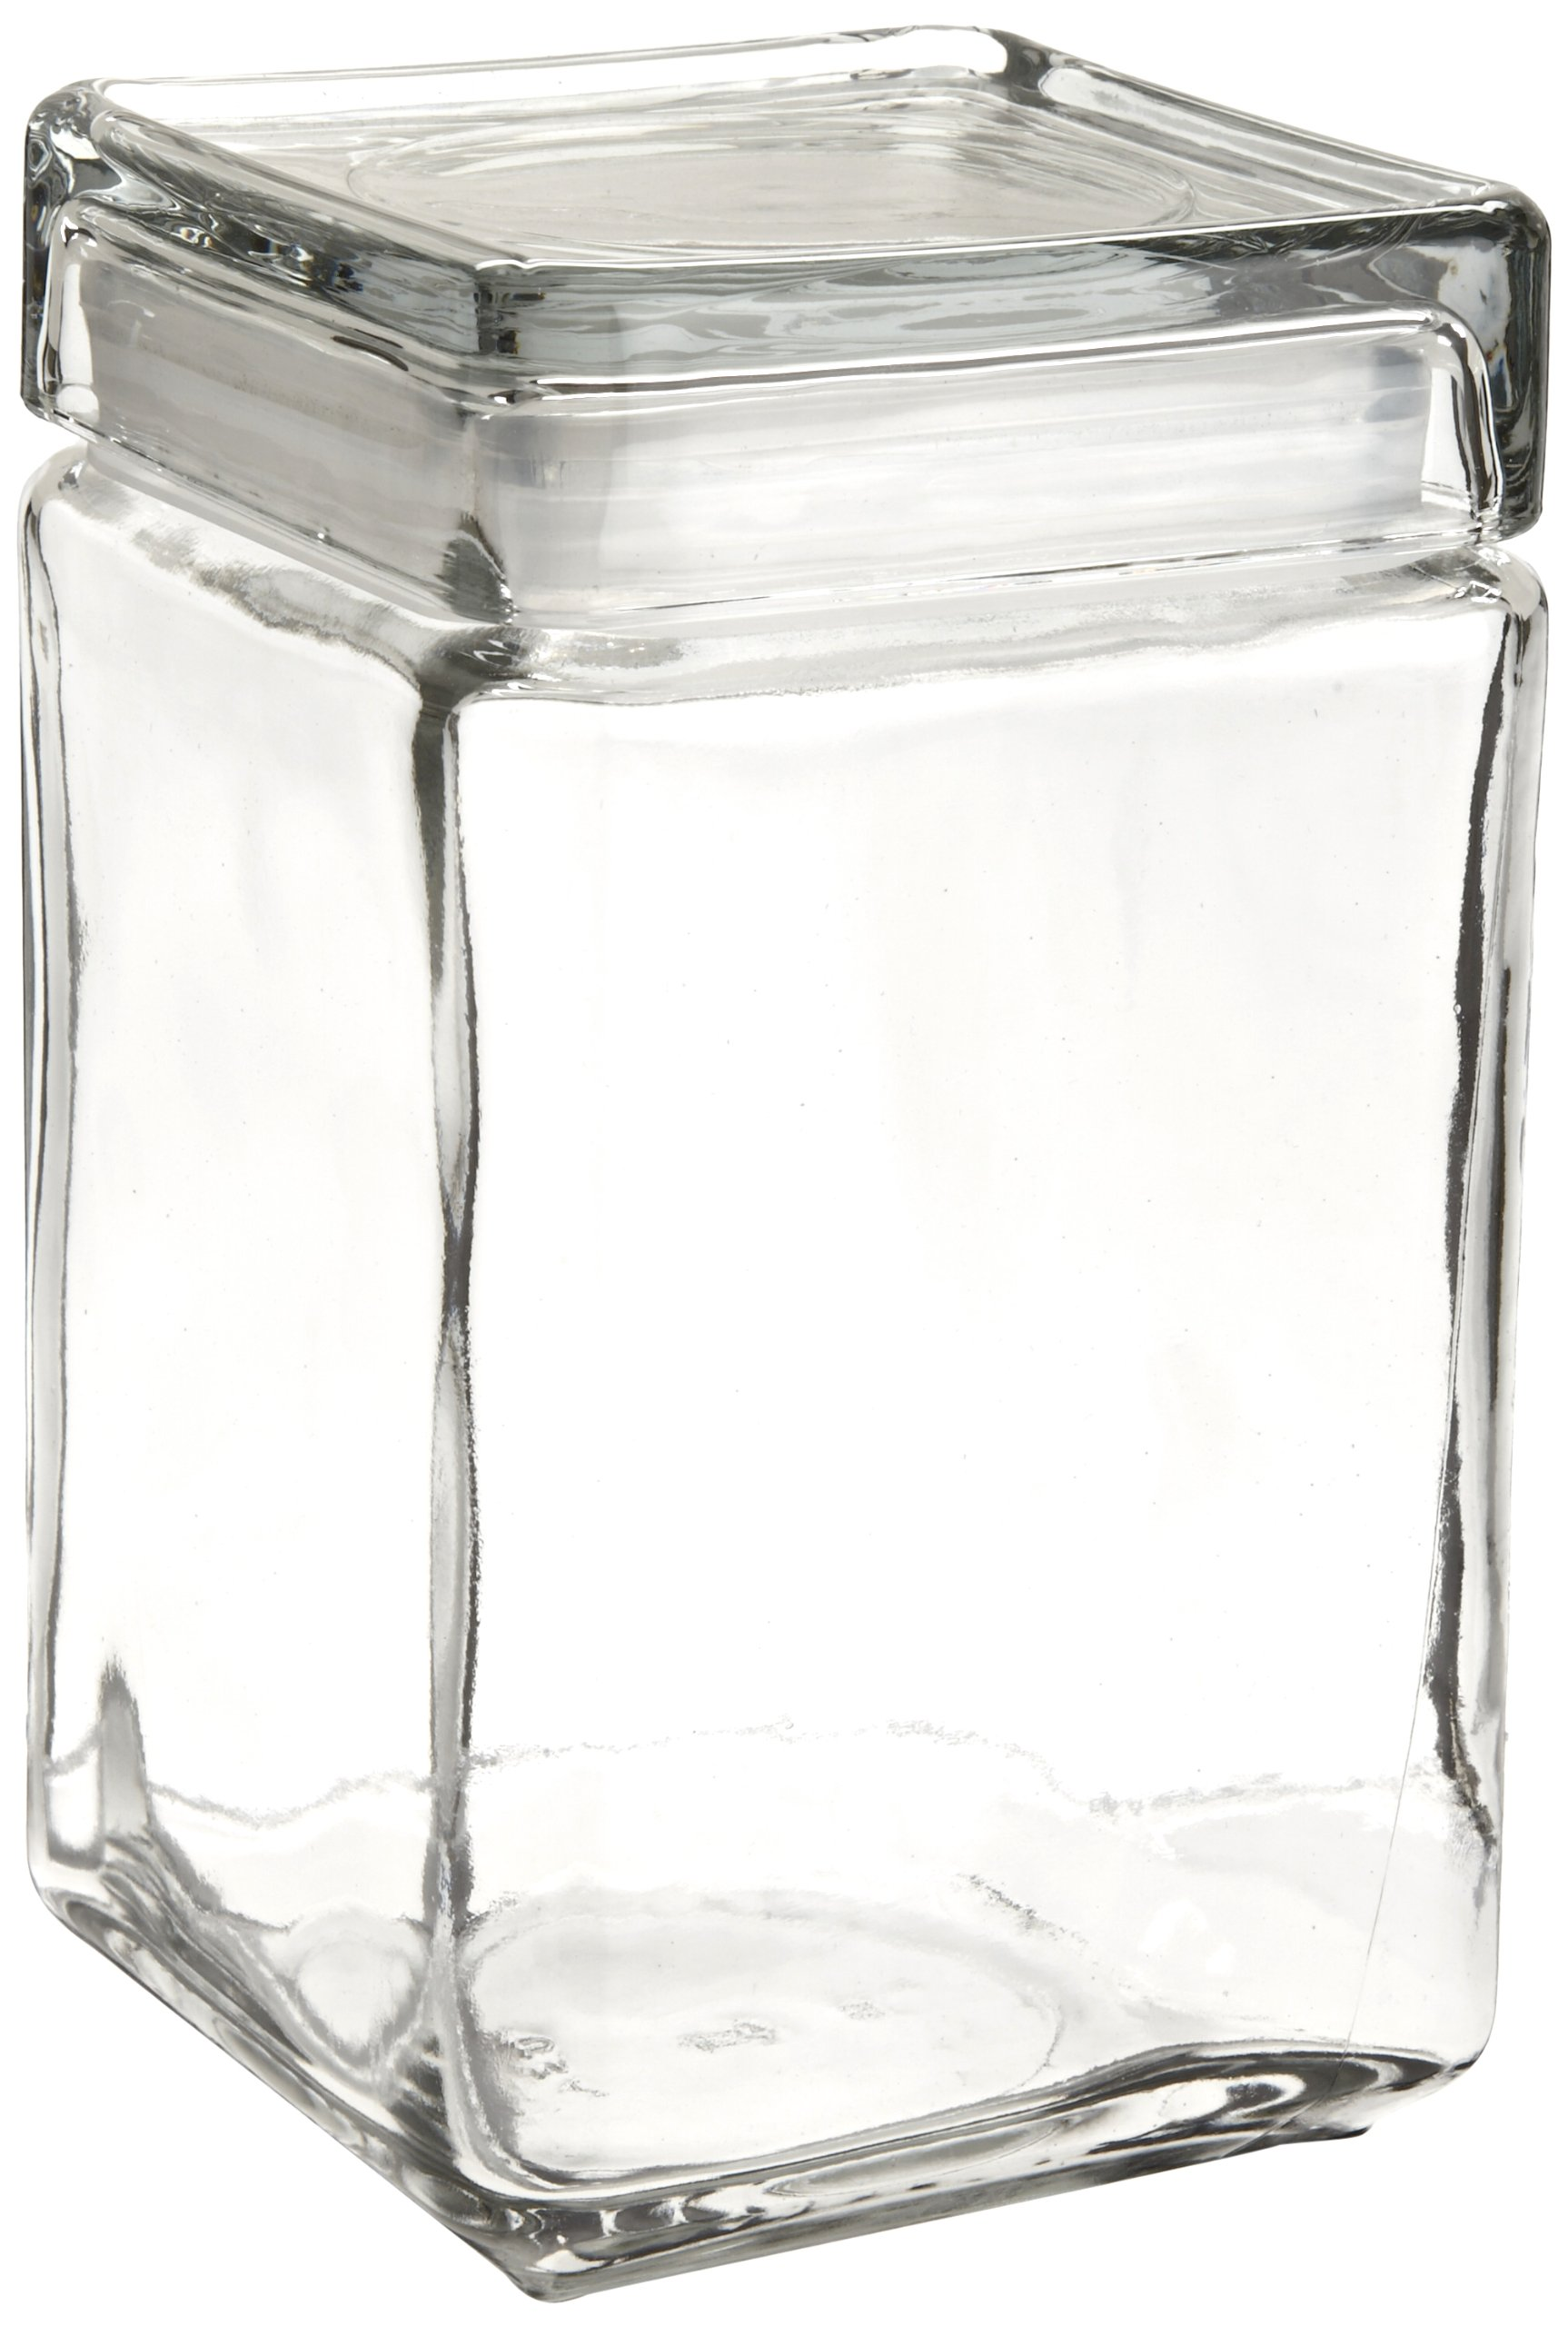 Oneida 85588R Stackable Square Glass Jar w/Glass Lid, 1.5 qt, Clear (Case of 4)